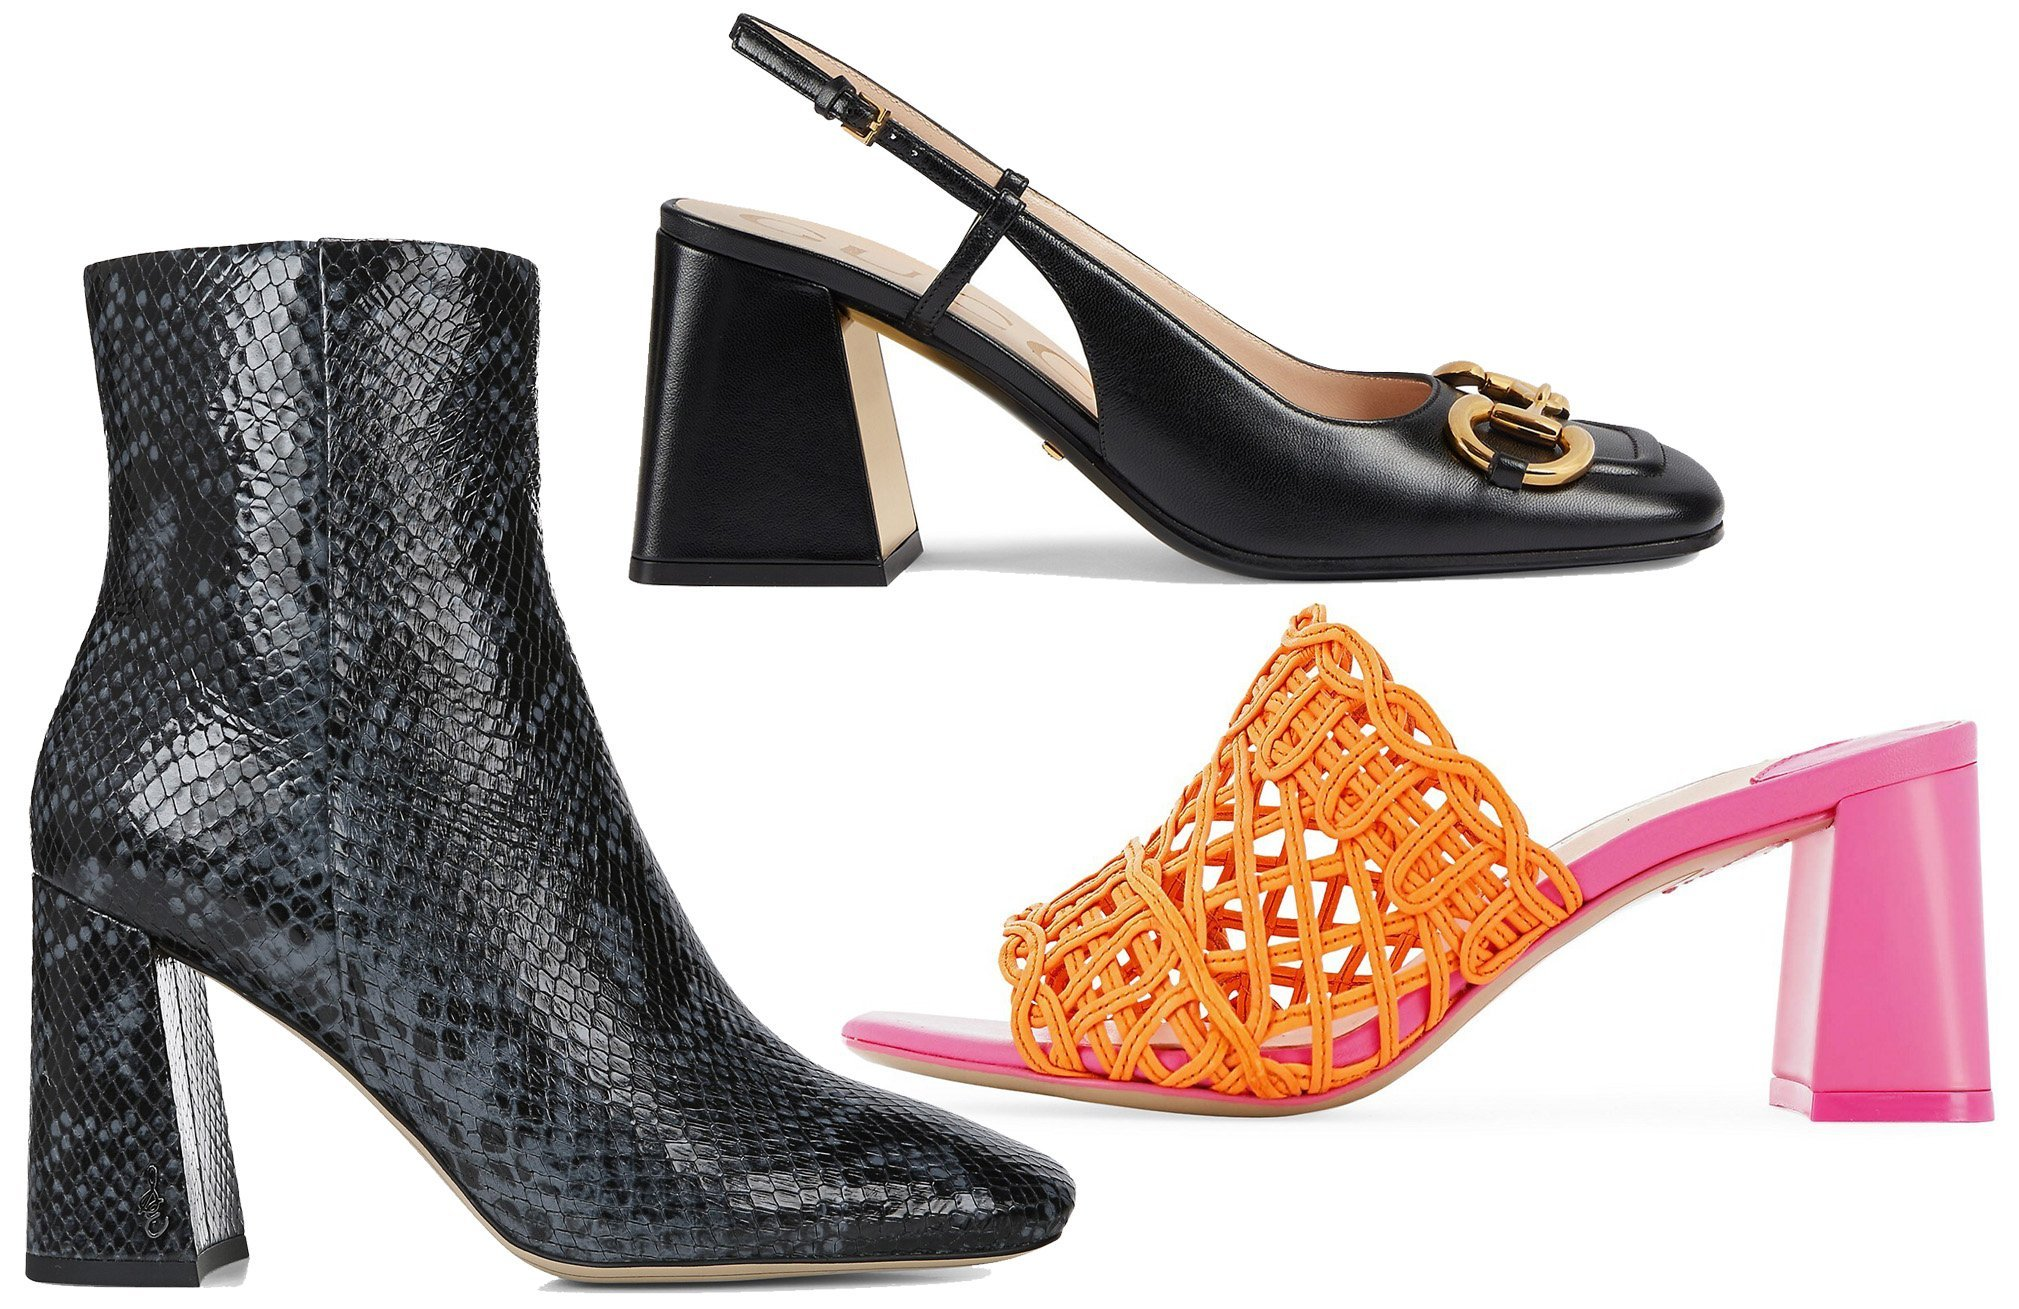 Similar to block heels, flare heels are comfortable but have a more feminine and retro look